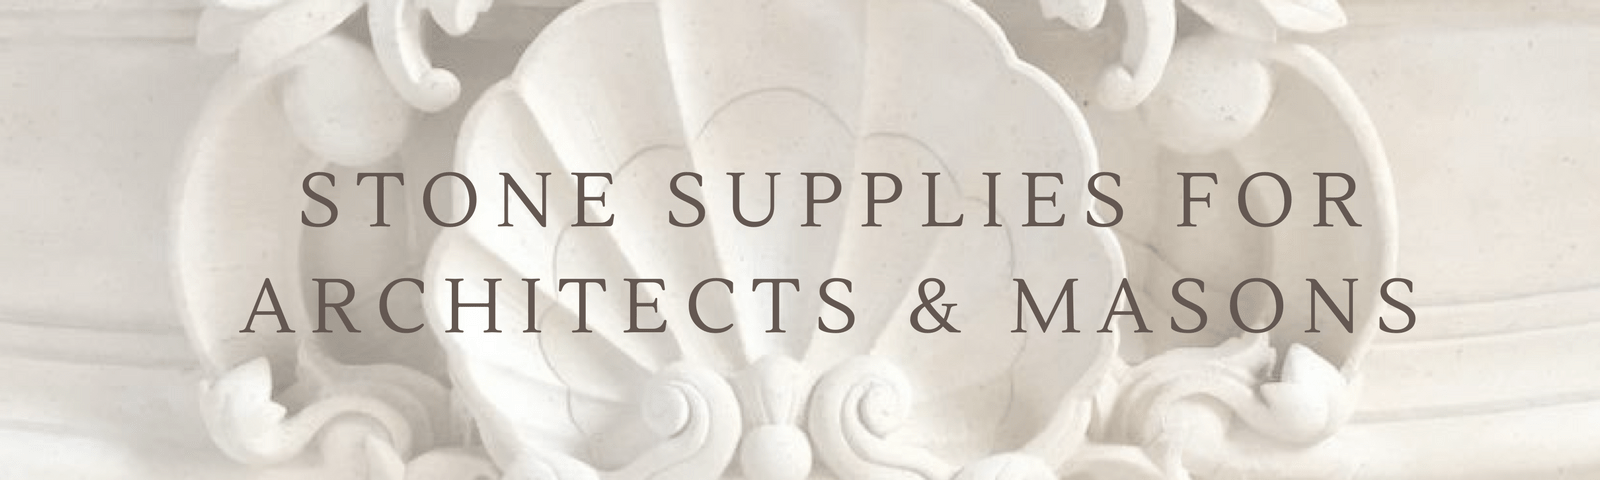 Architectural stone supplies for masonry and building